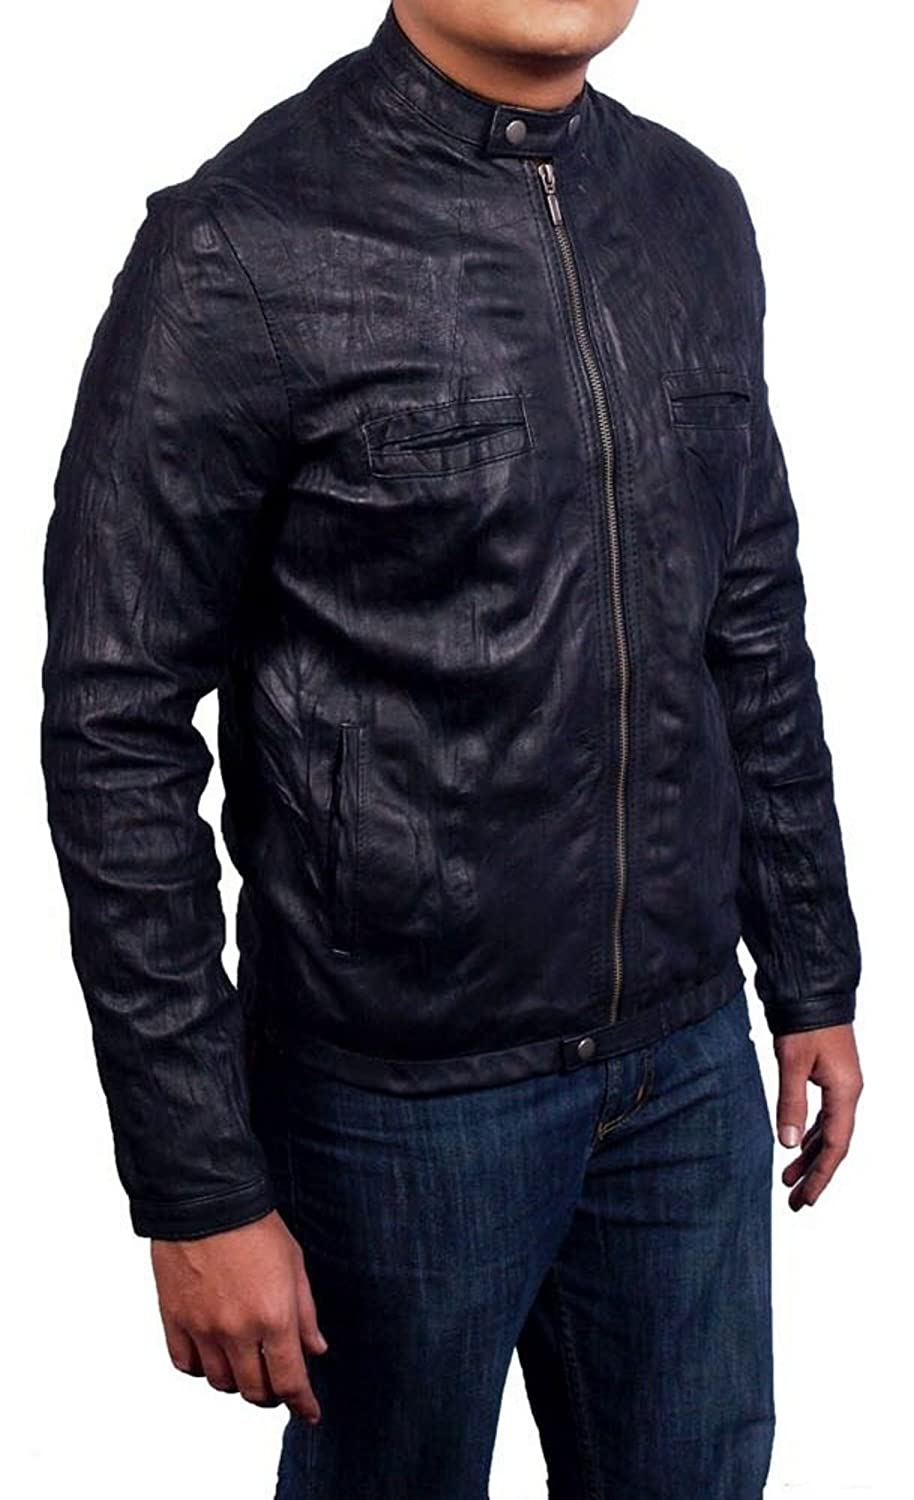 Oblow Wrinkled black Leather Jacket made in Sheep Napa Leather